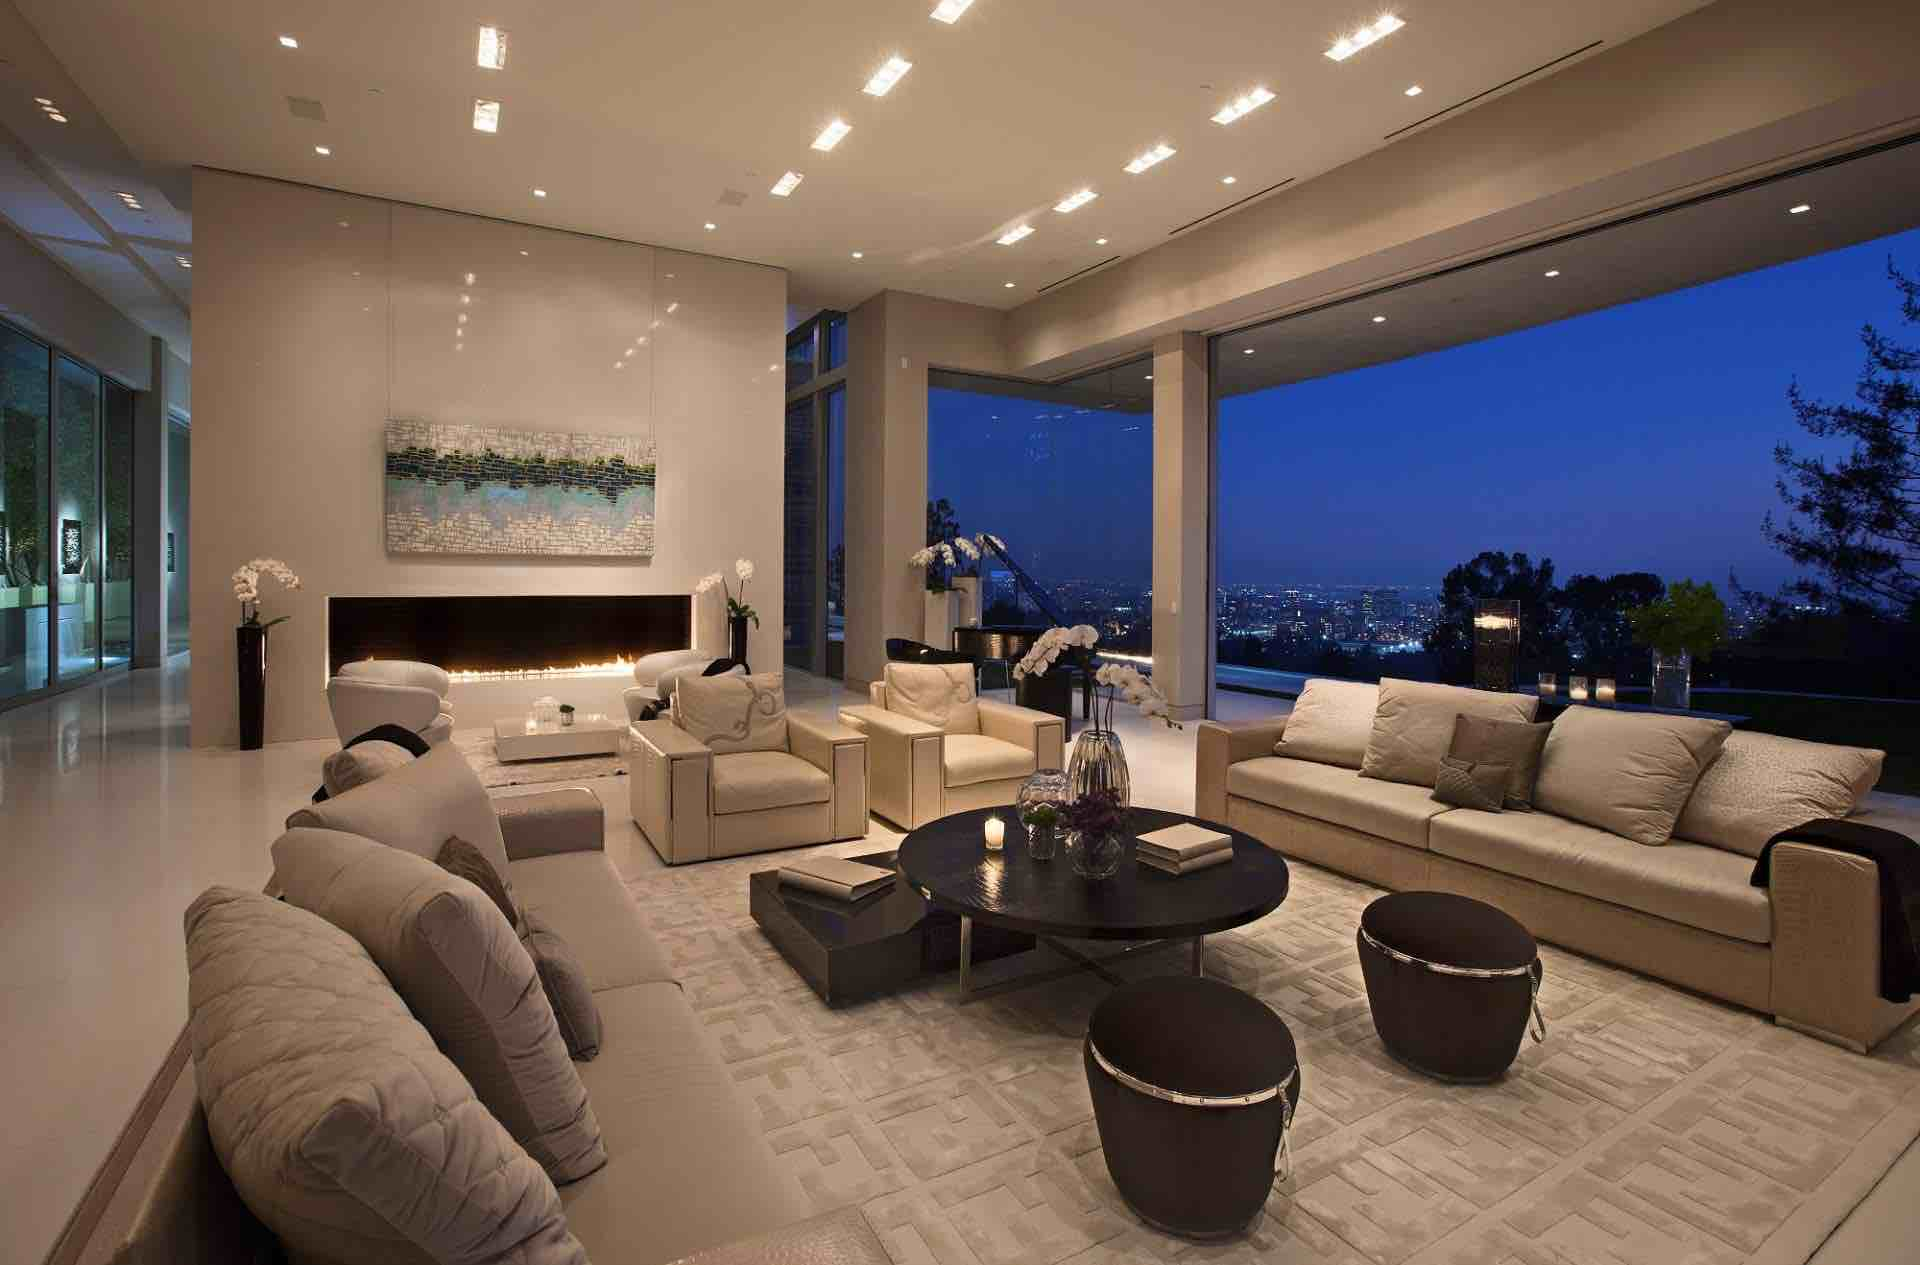 Sarbonne road residence by mcclean design caandesign for Modern home decor los angeles